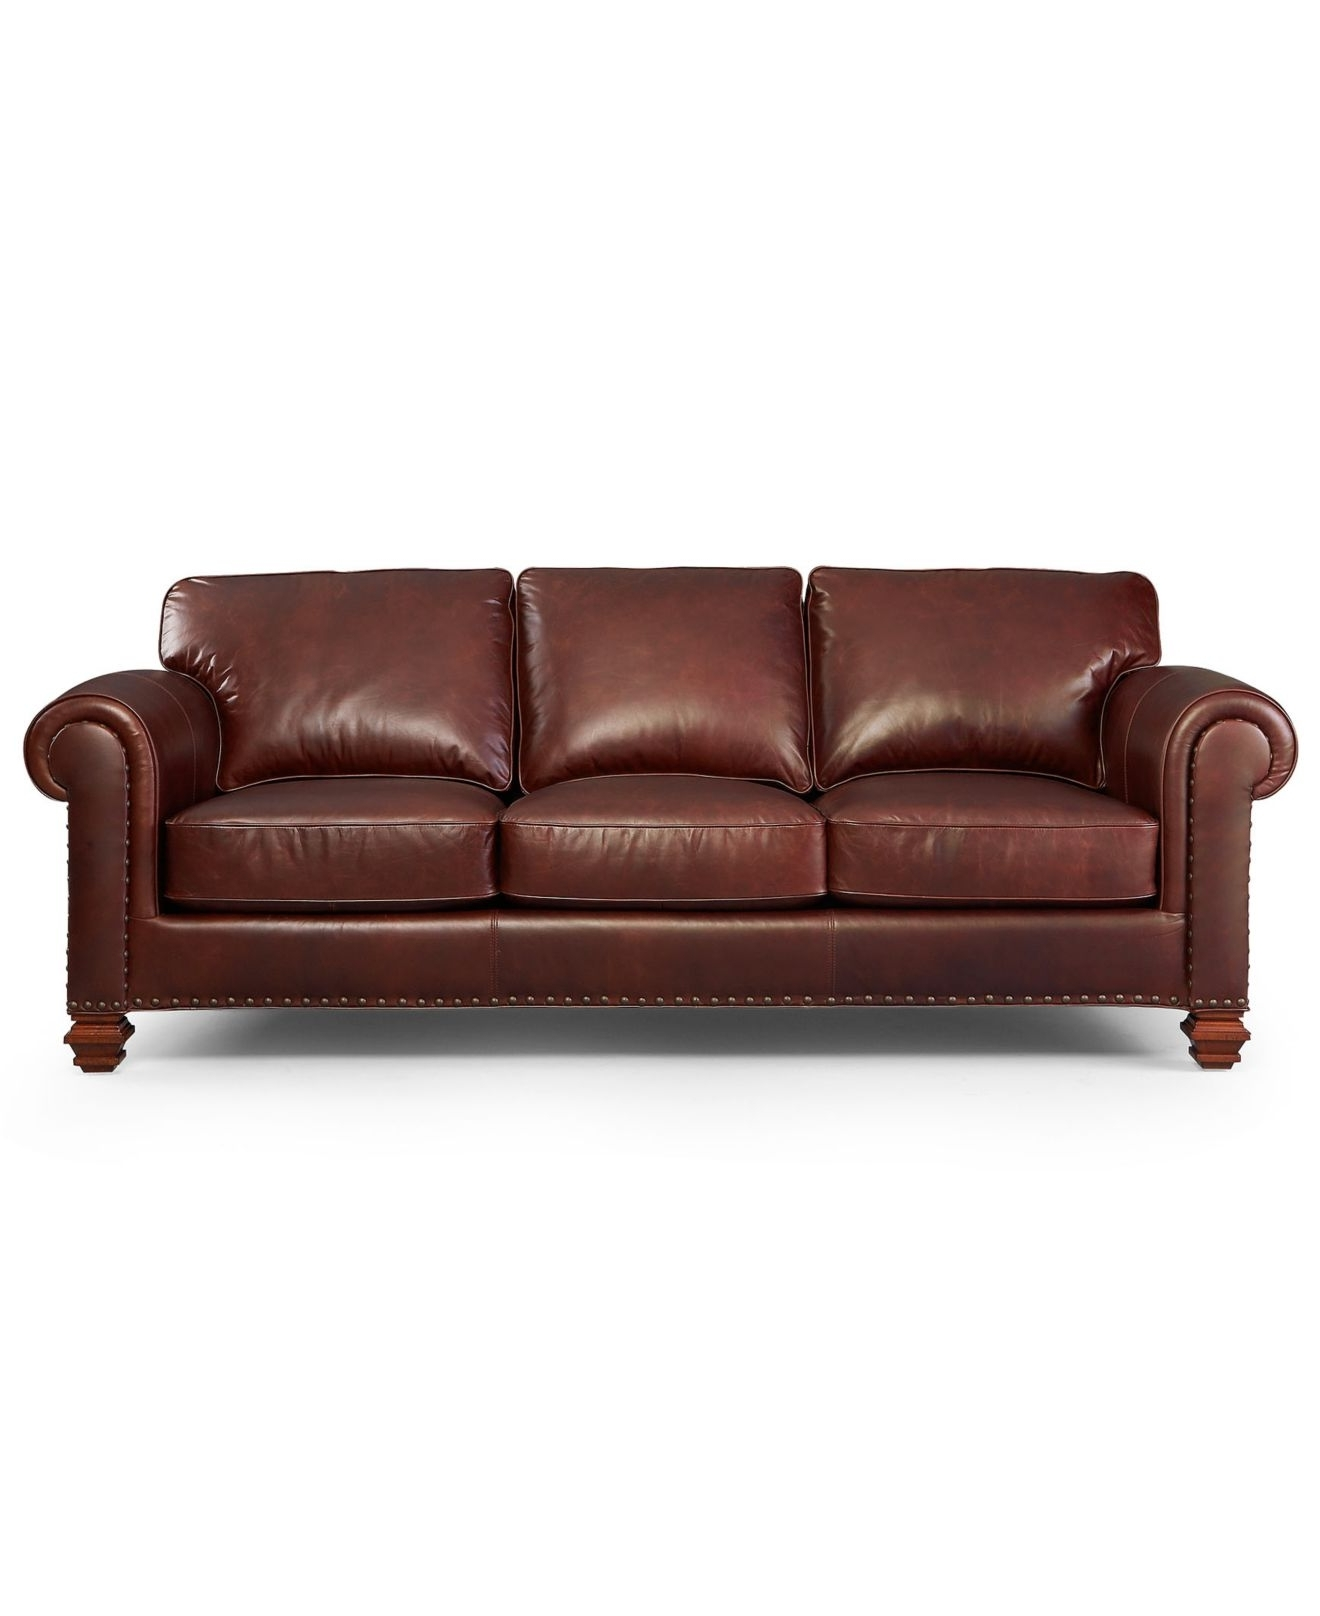 Lauren Ralph Lauren Leather Sofa, Stanmore – Living Room Furniture For Recent Macys Leather Sofas (View 12 of 20)